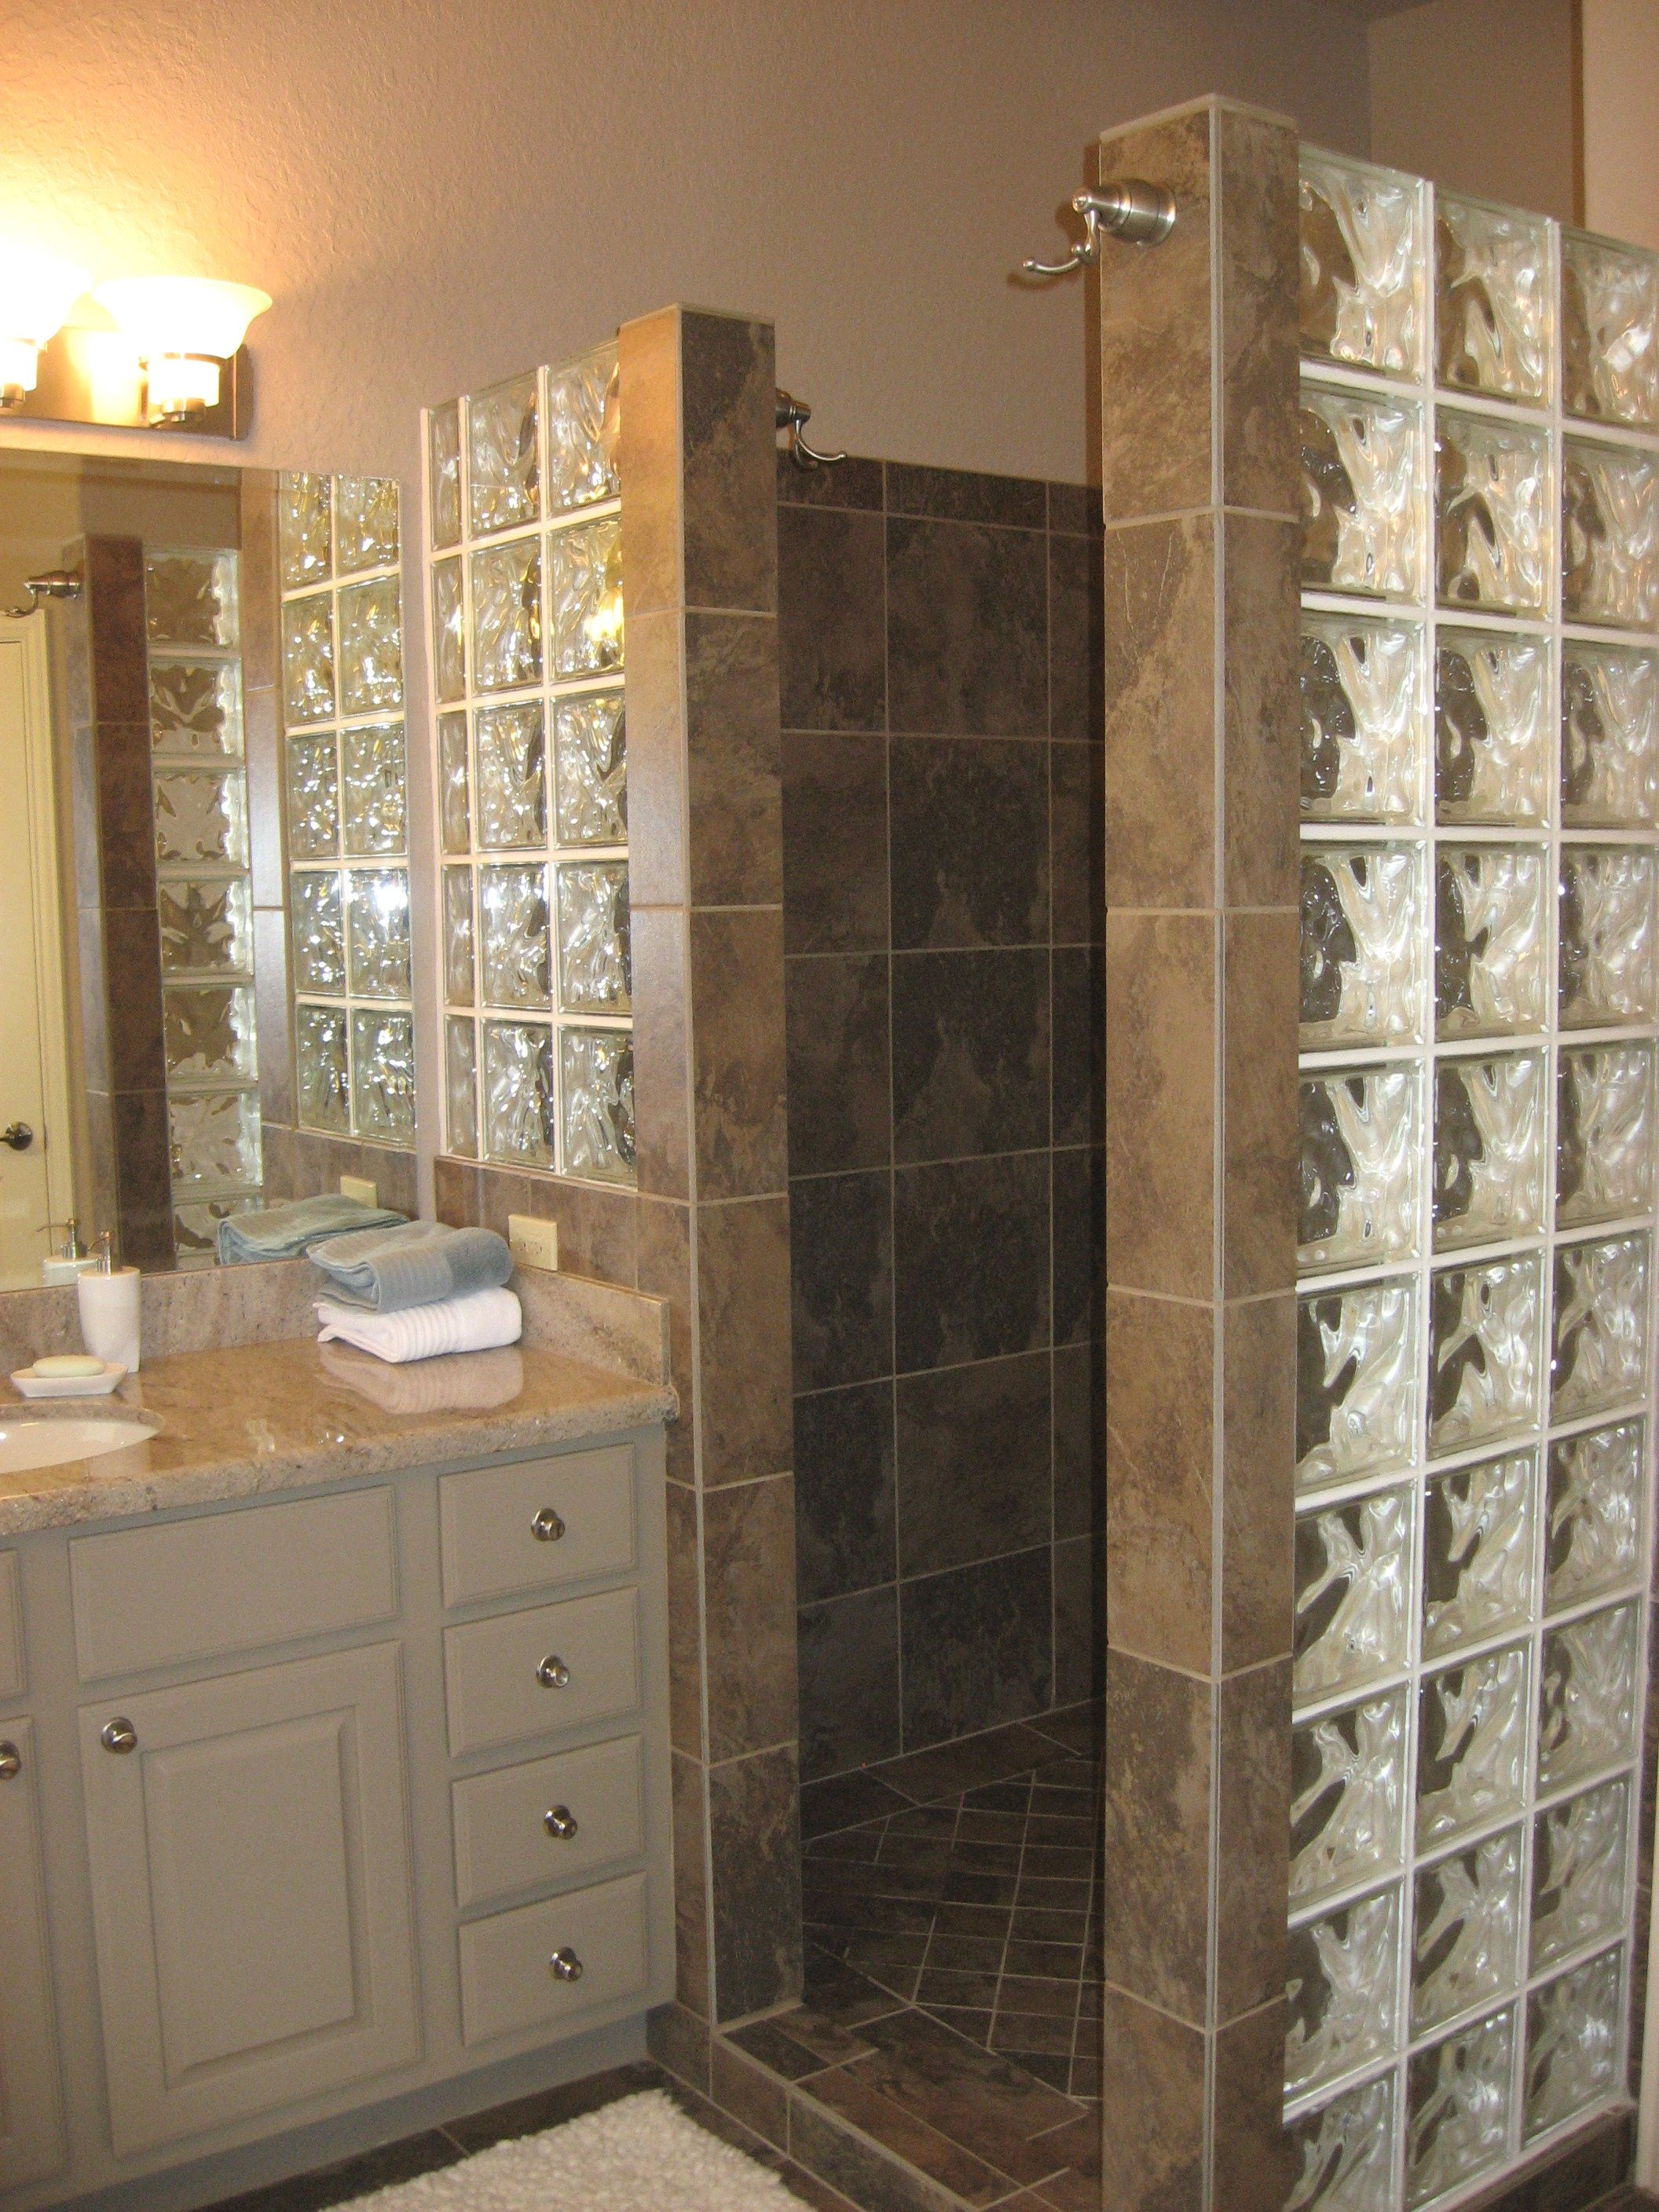 Custom walk in shower with no door and glass block for for Bathroom designs glass